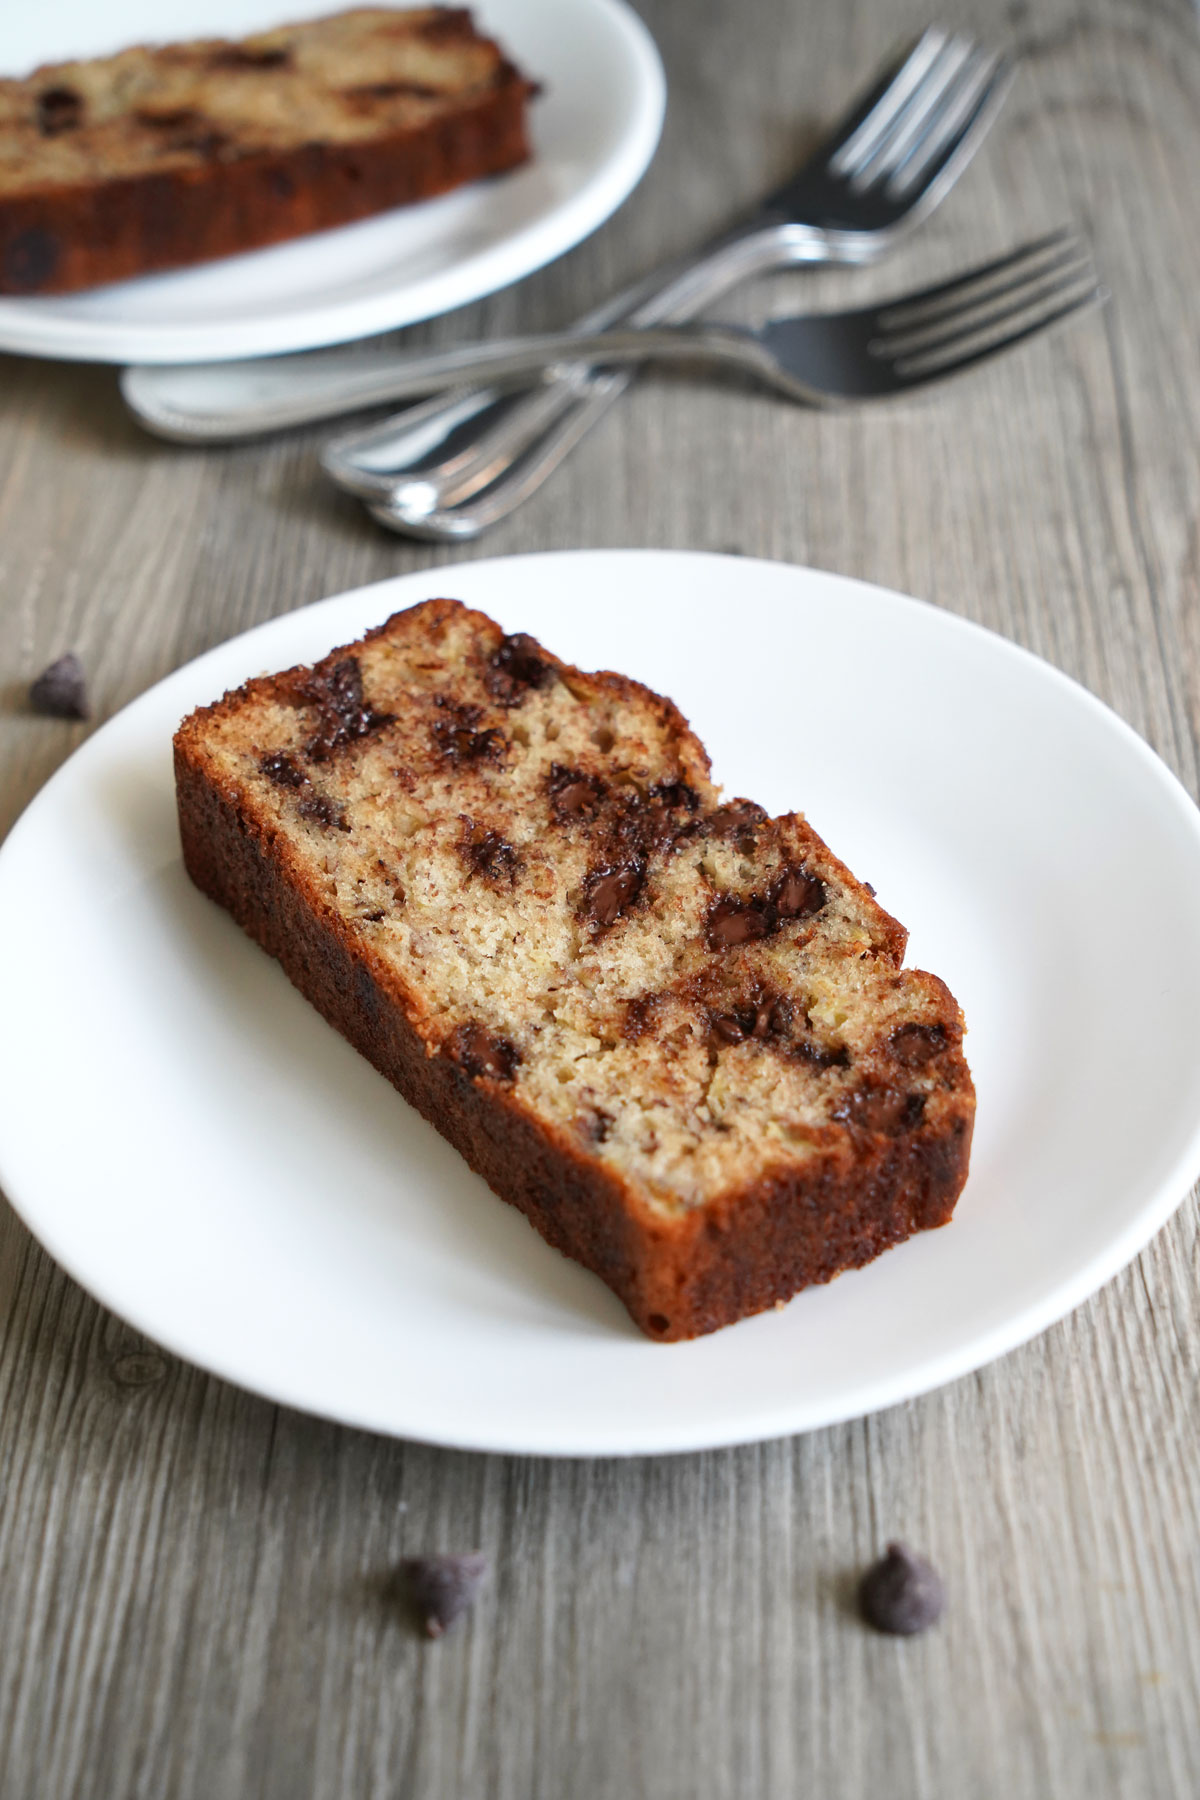 Slices of chocolate chip banana bread on plates next to forks.